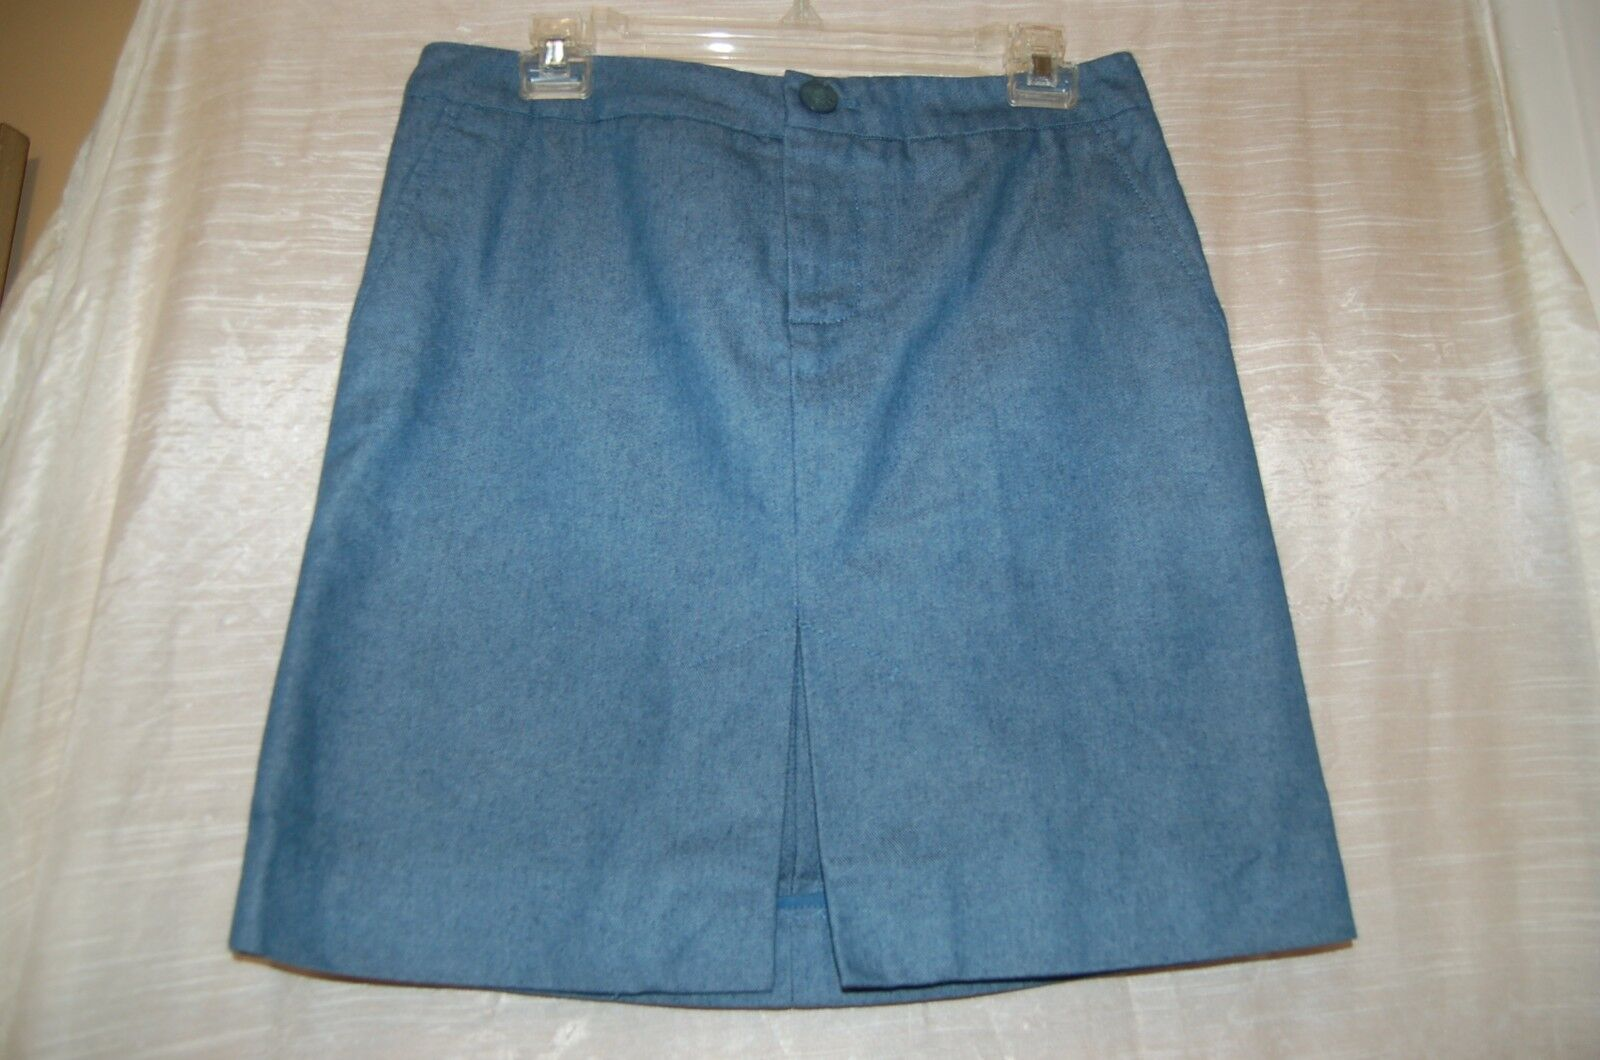 Marc Jacobs bluee Cotton Polyester Mini Jean Skirt Size 8 Made in Poland